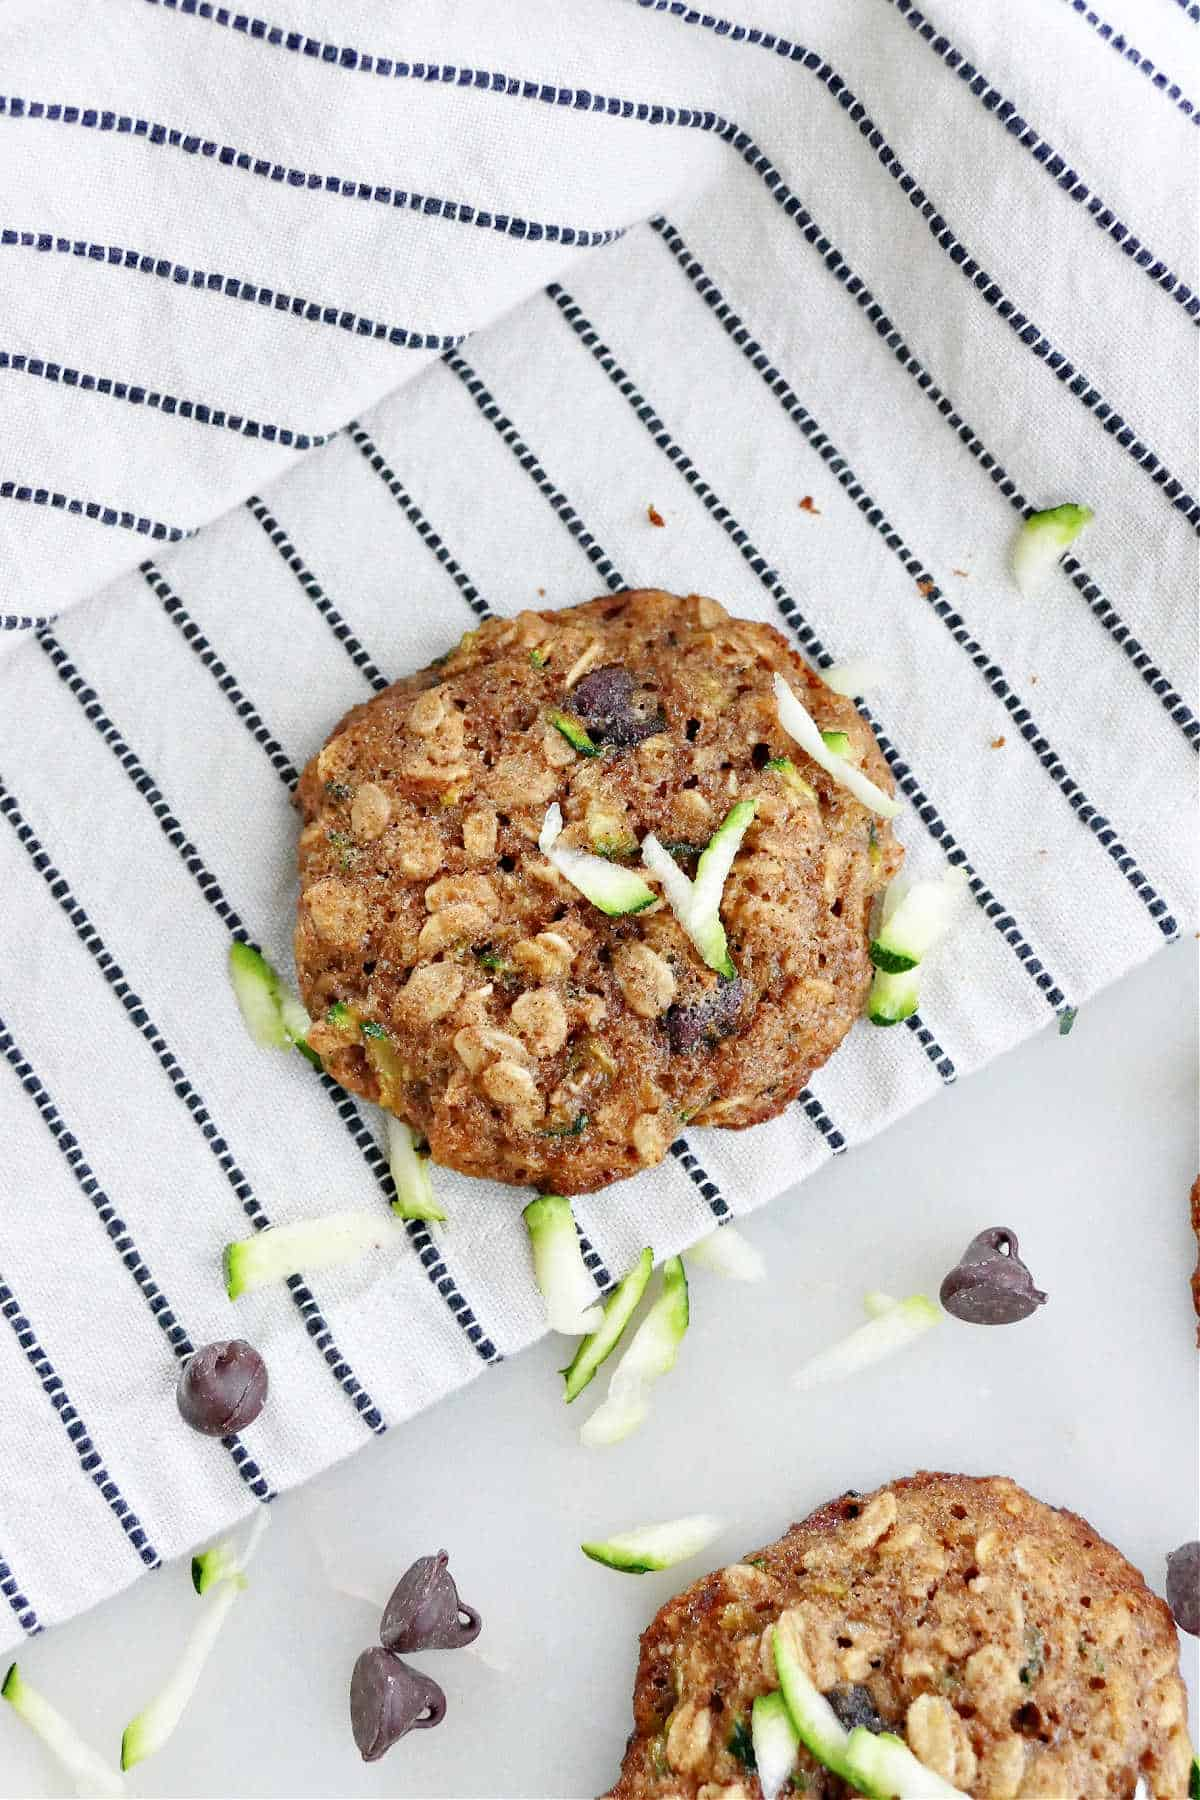 zucchini chocolate chip cookie on a striped dish towel on a counter